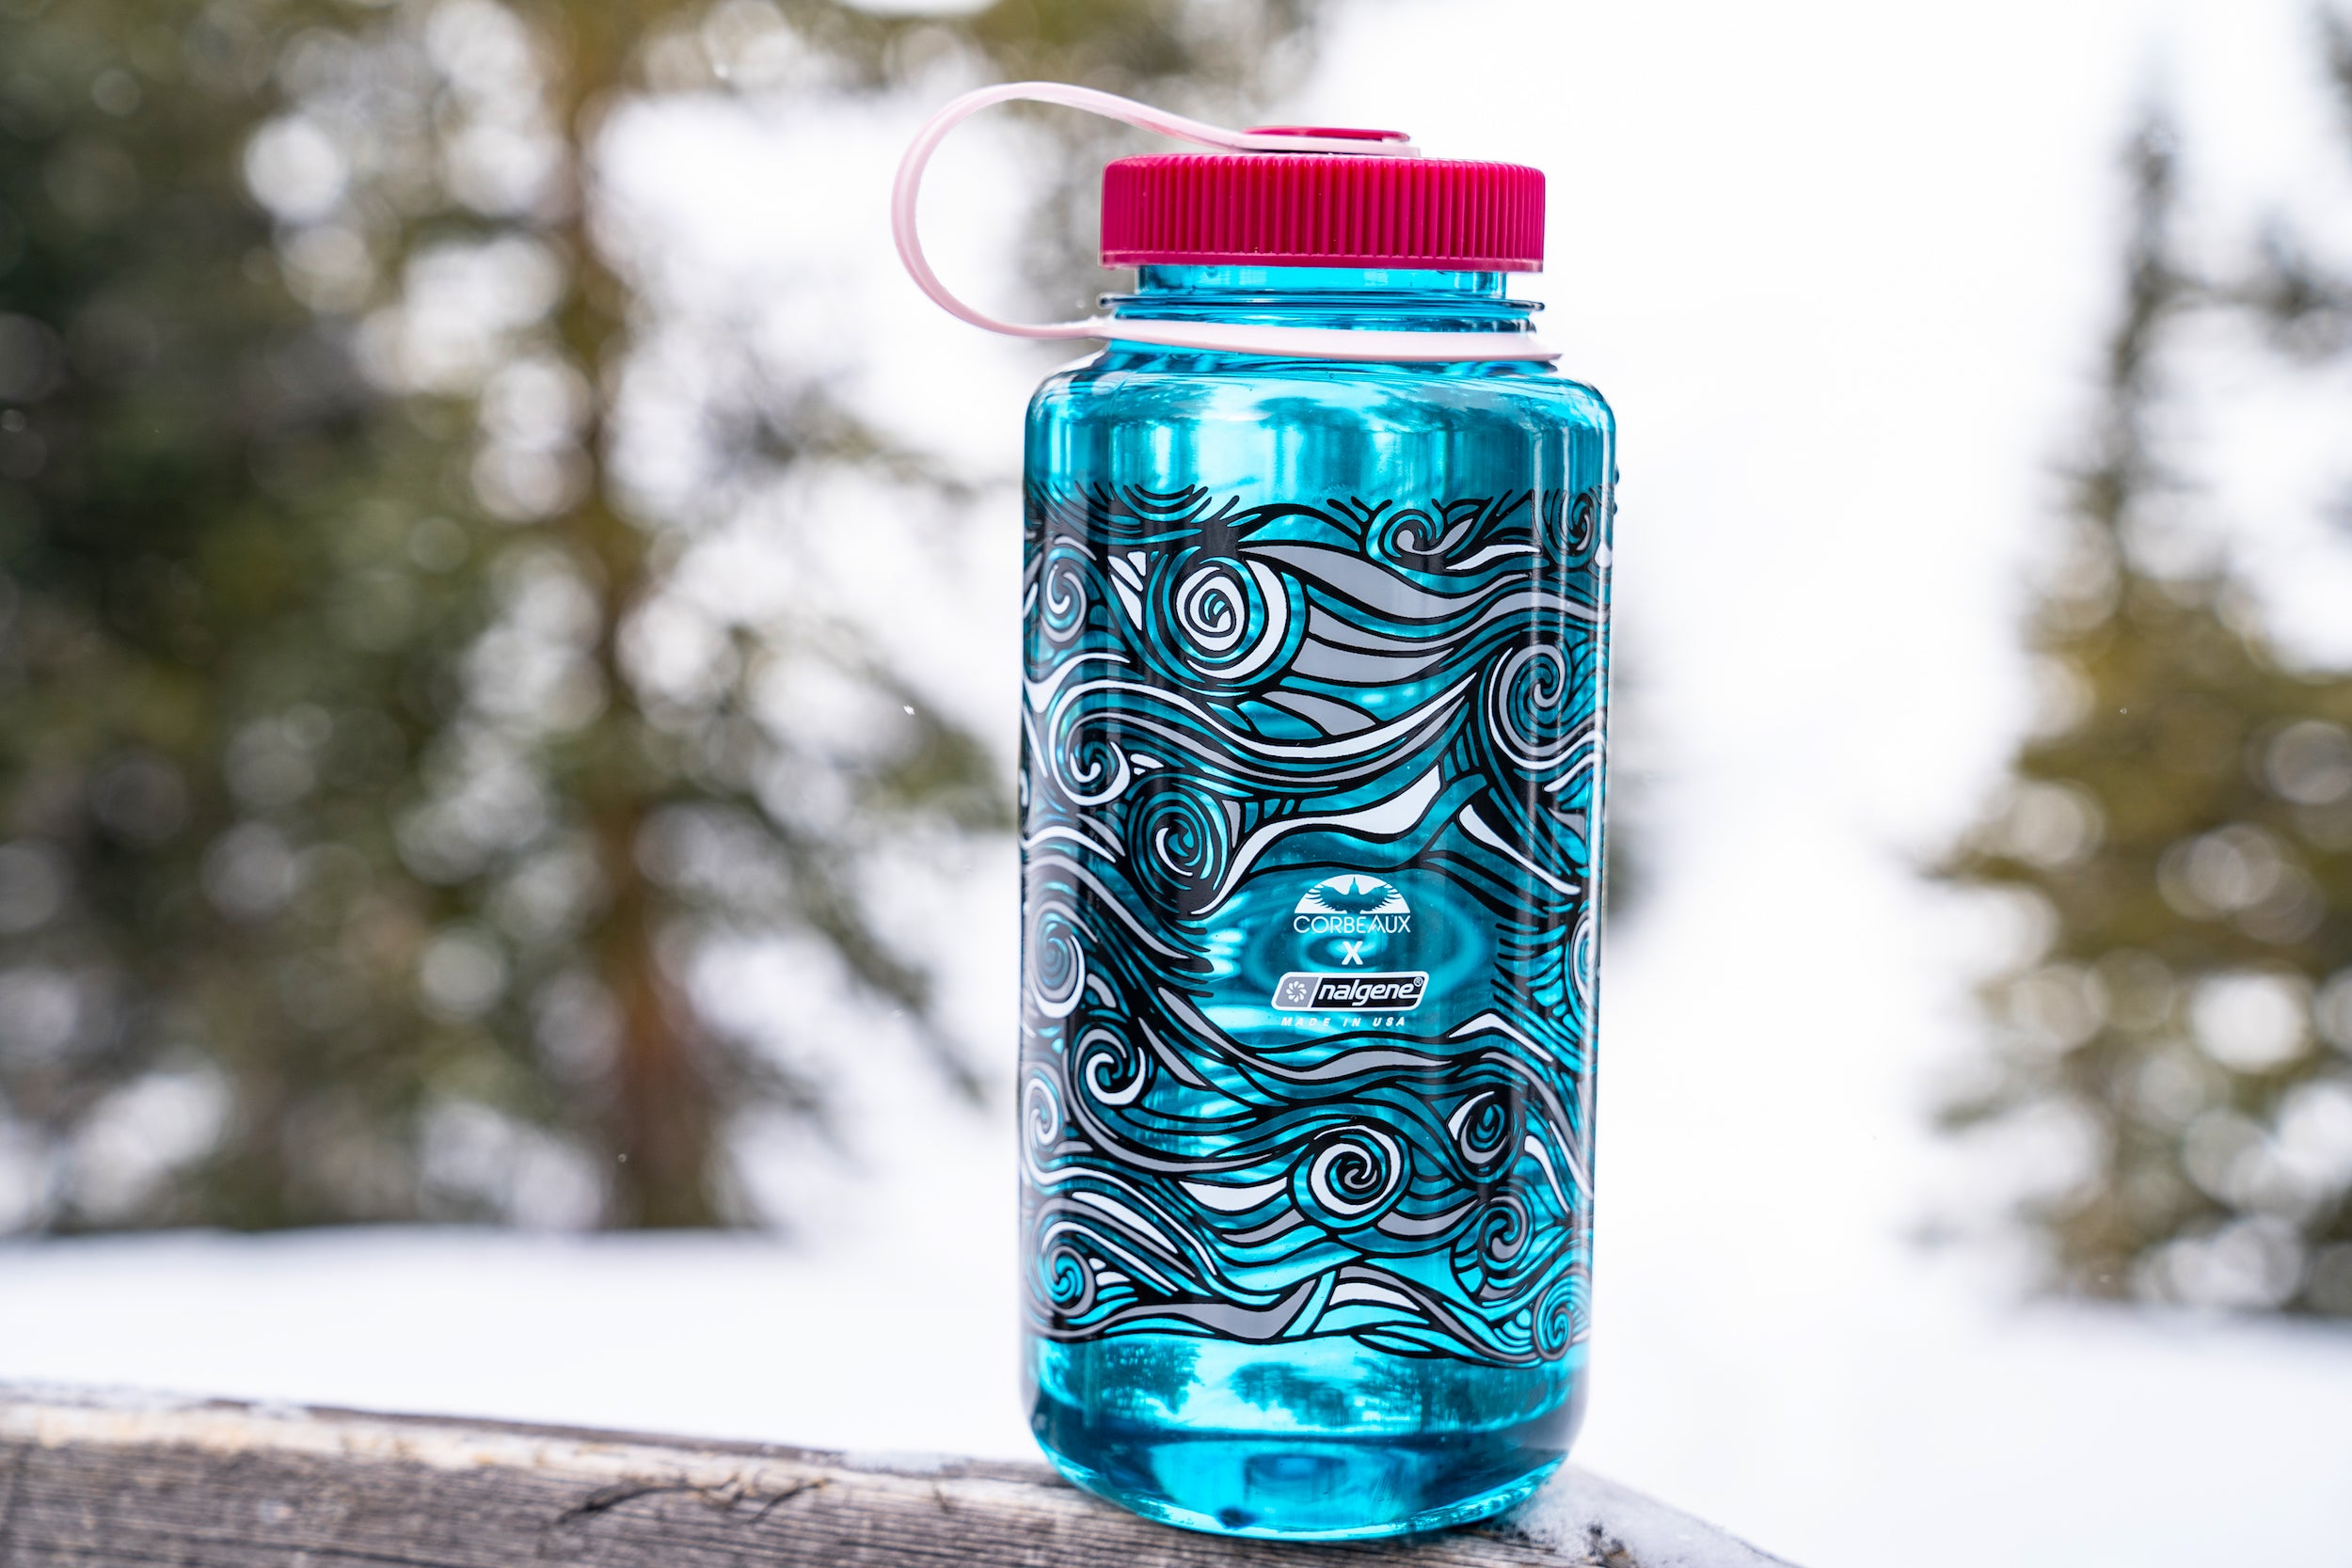 Limited Edition Nalgene Bottles